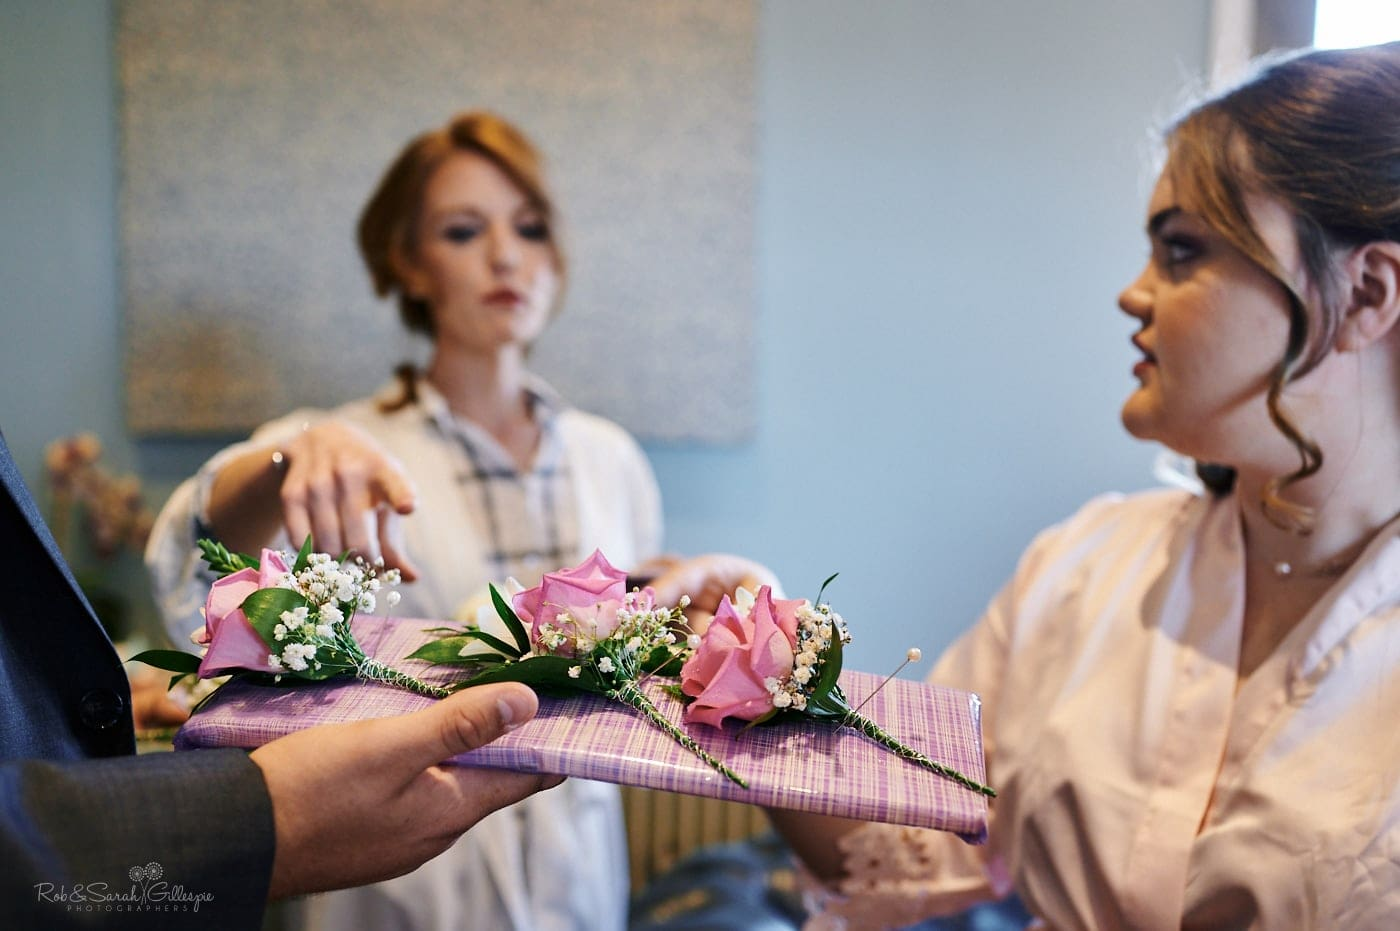 Bride and bridesmaids check buttonhole flowers